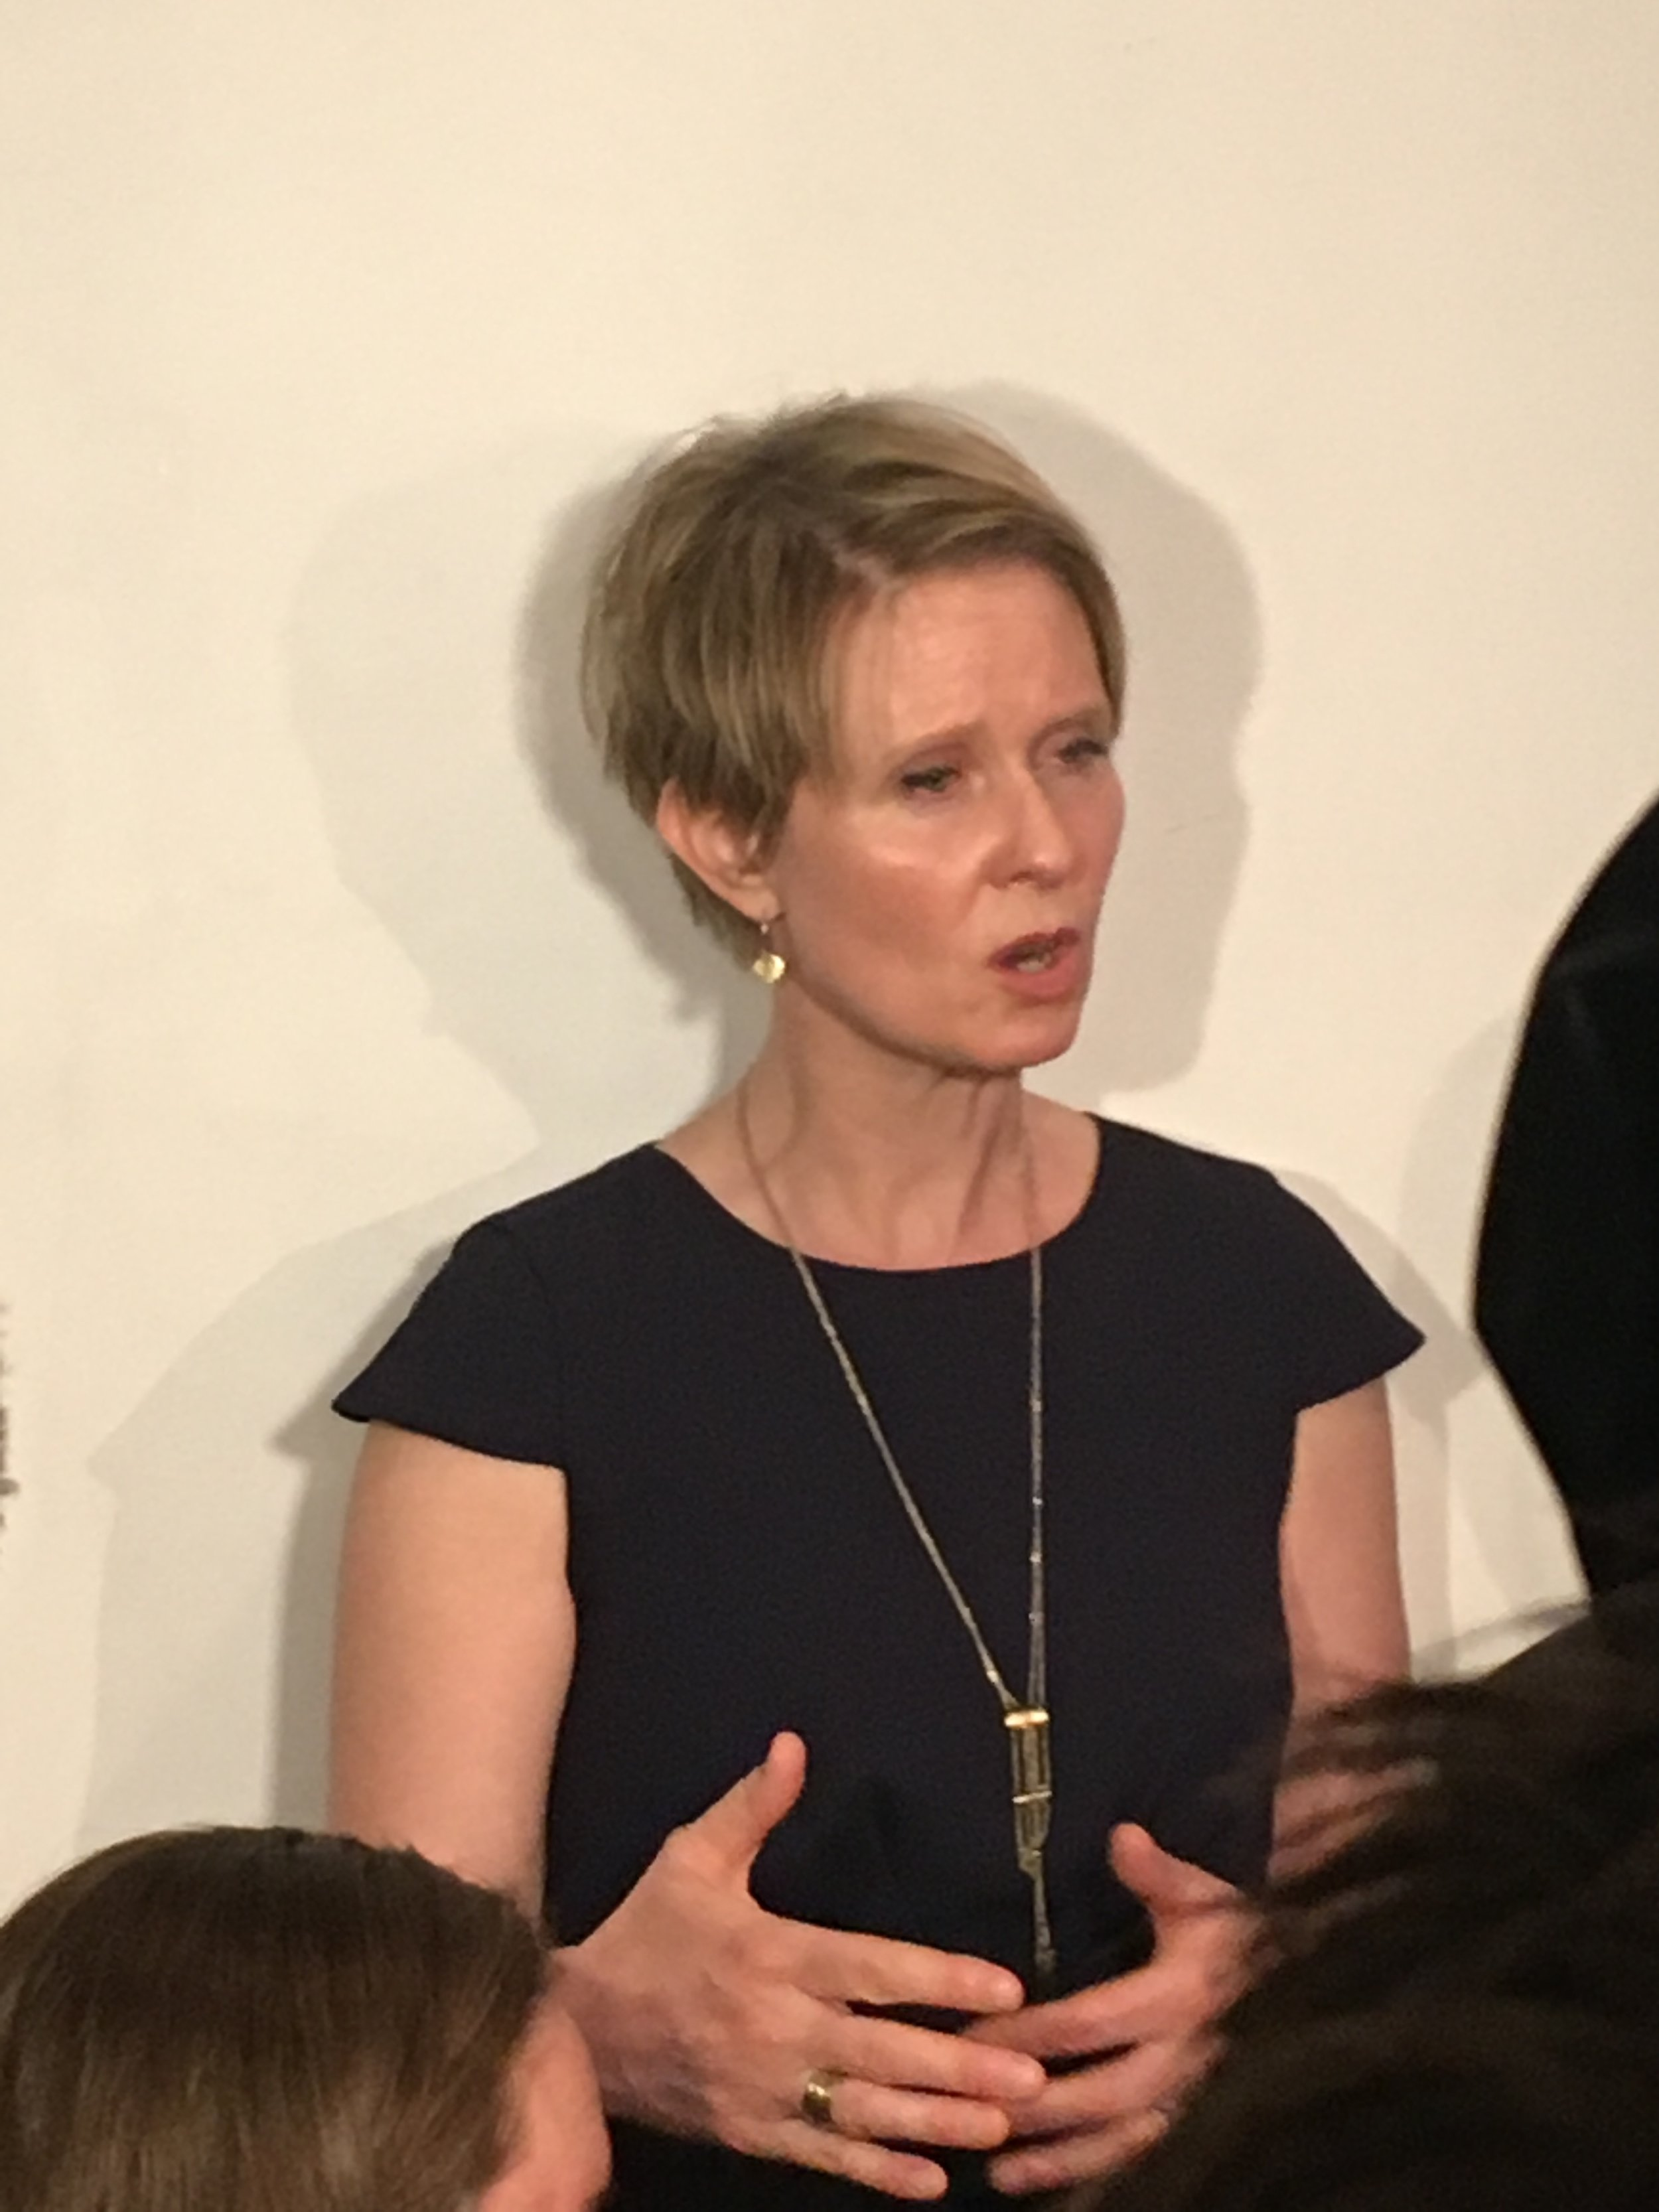 Cynthia Nixon speaks at today's press conference. Photo by Jorja Rose.